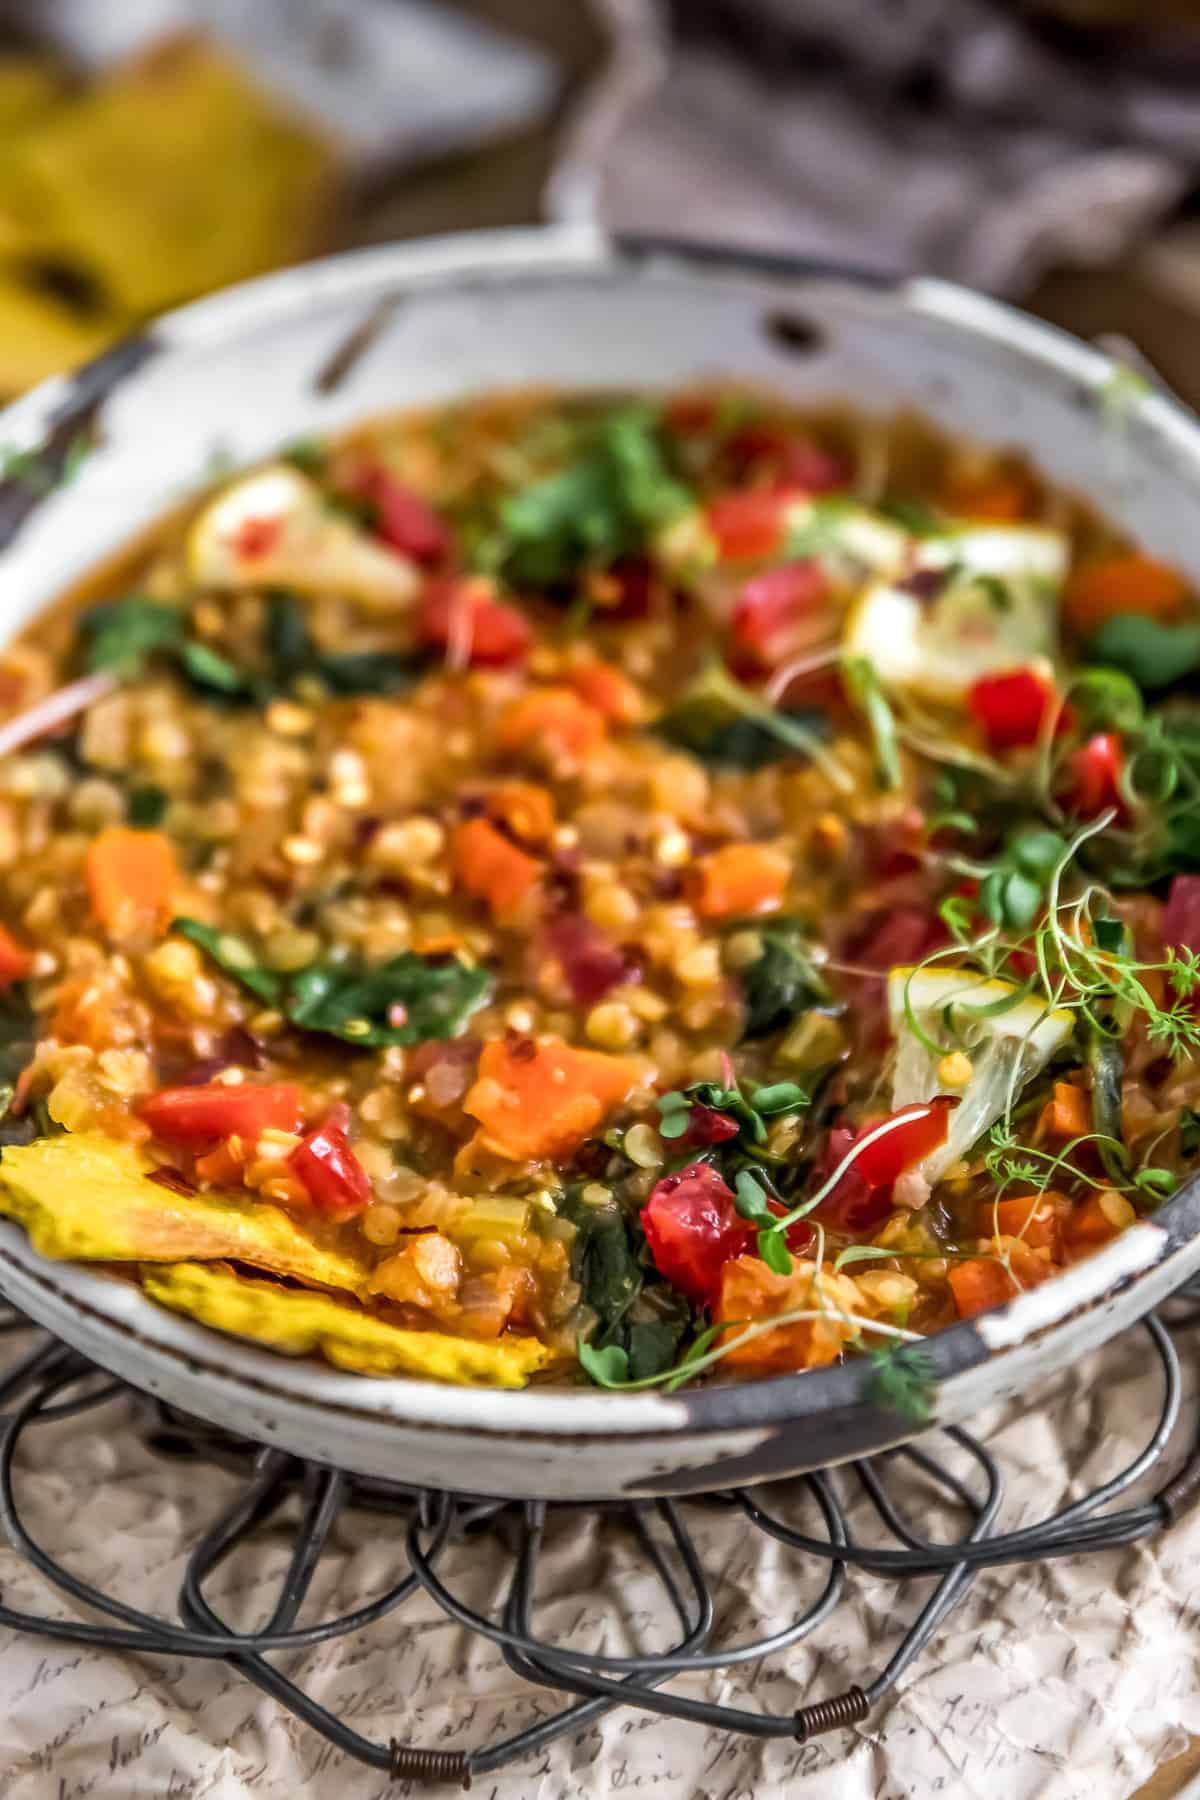 Lemony Red Lentil Spinach Stew in a bowl